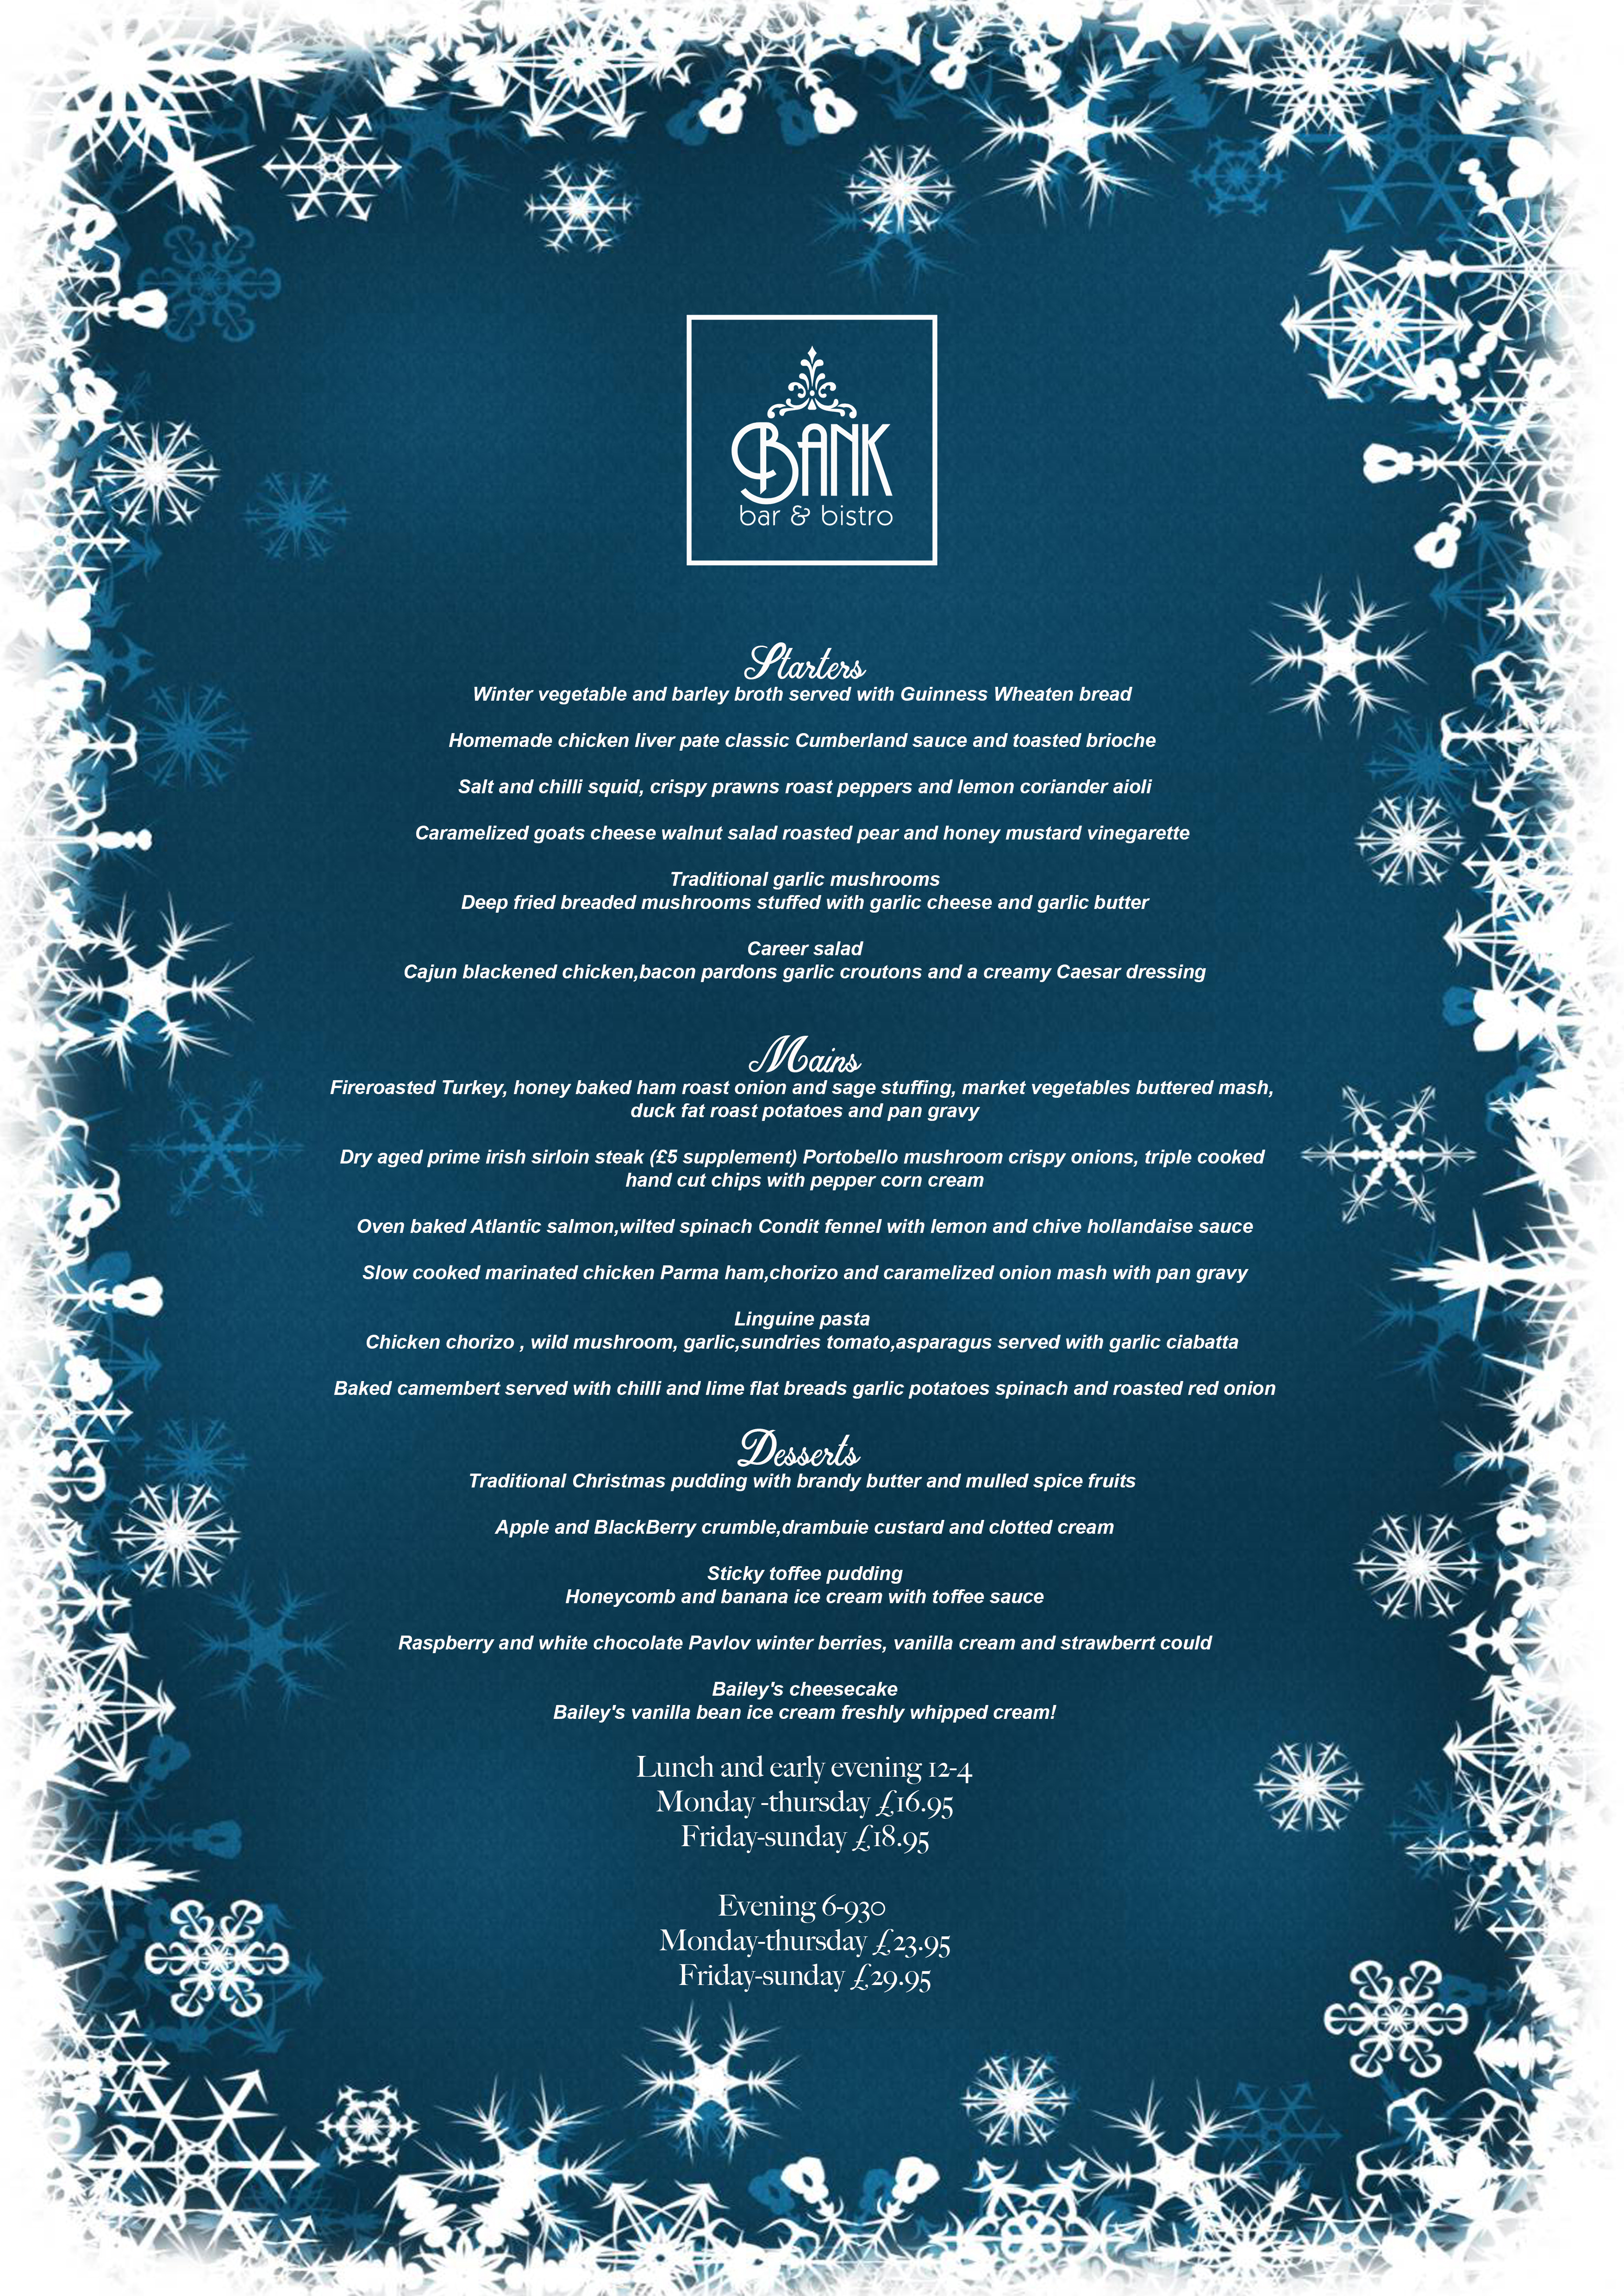 Eating out in newry at christmas newry business improvement district check out the banks christmas menu malvernweather Images